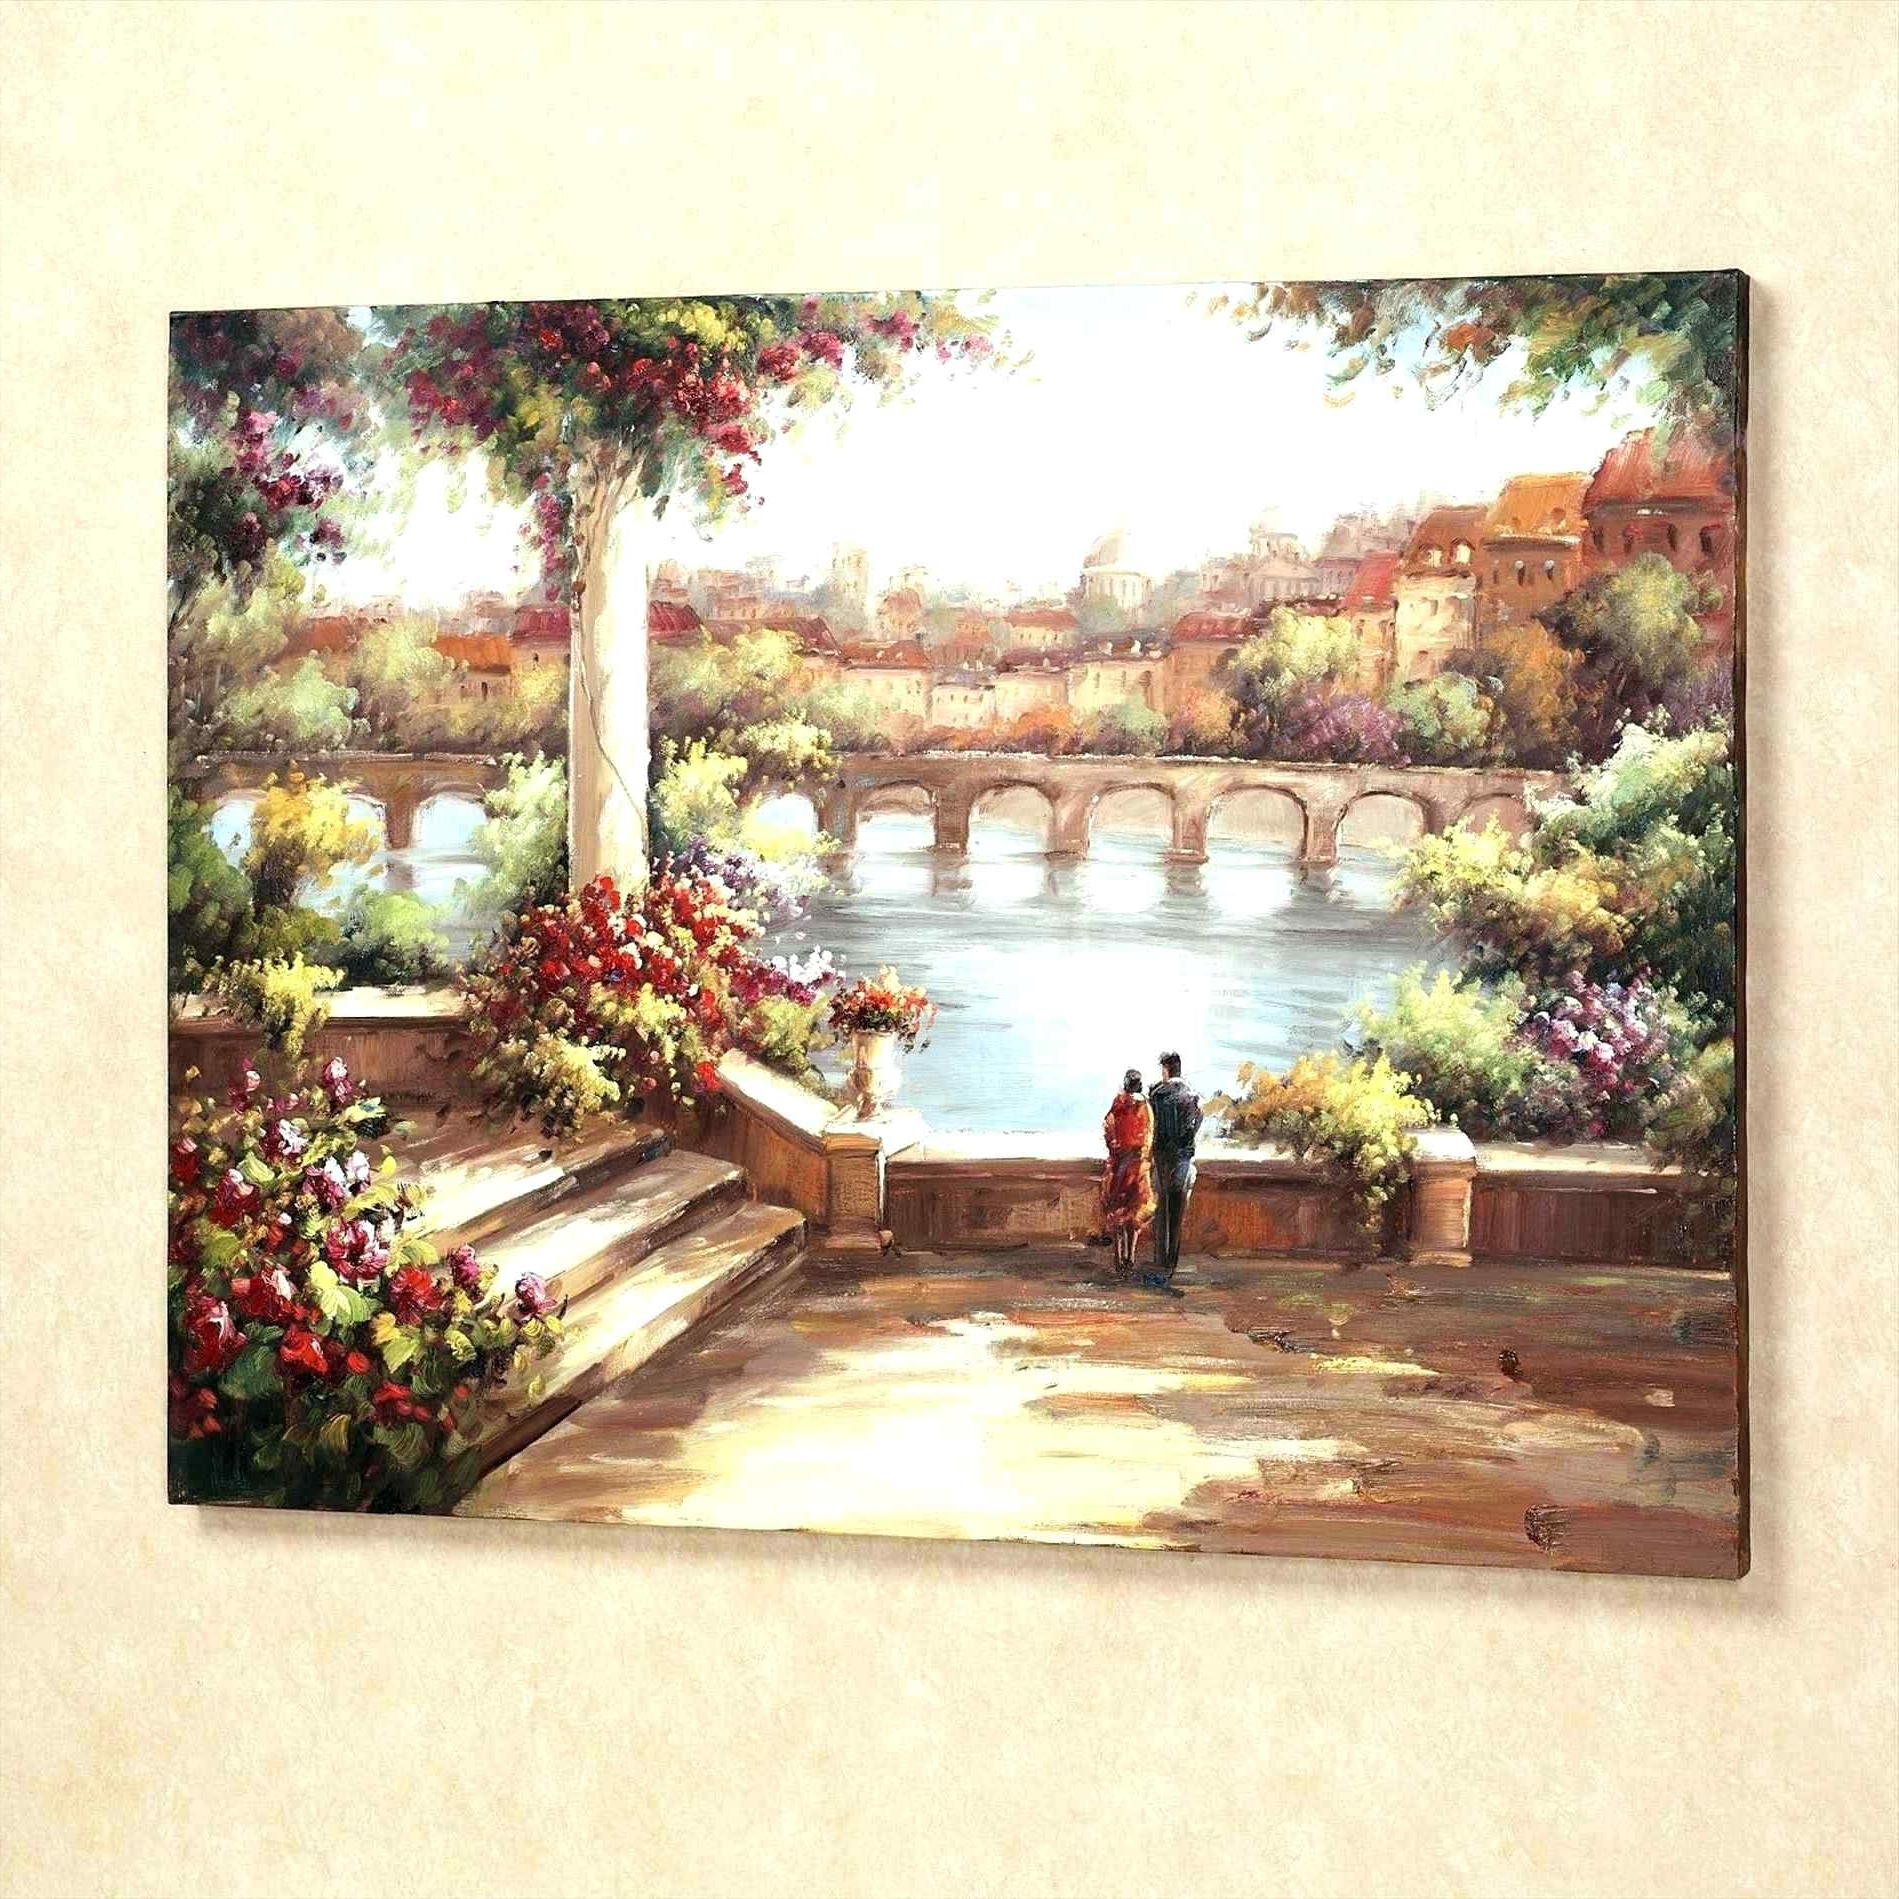 Italian Wall Art Stickers With Regard To Popular Wall Arts: Italian Wall Art. Italian Wall Art Decor (View 8 of 15)